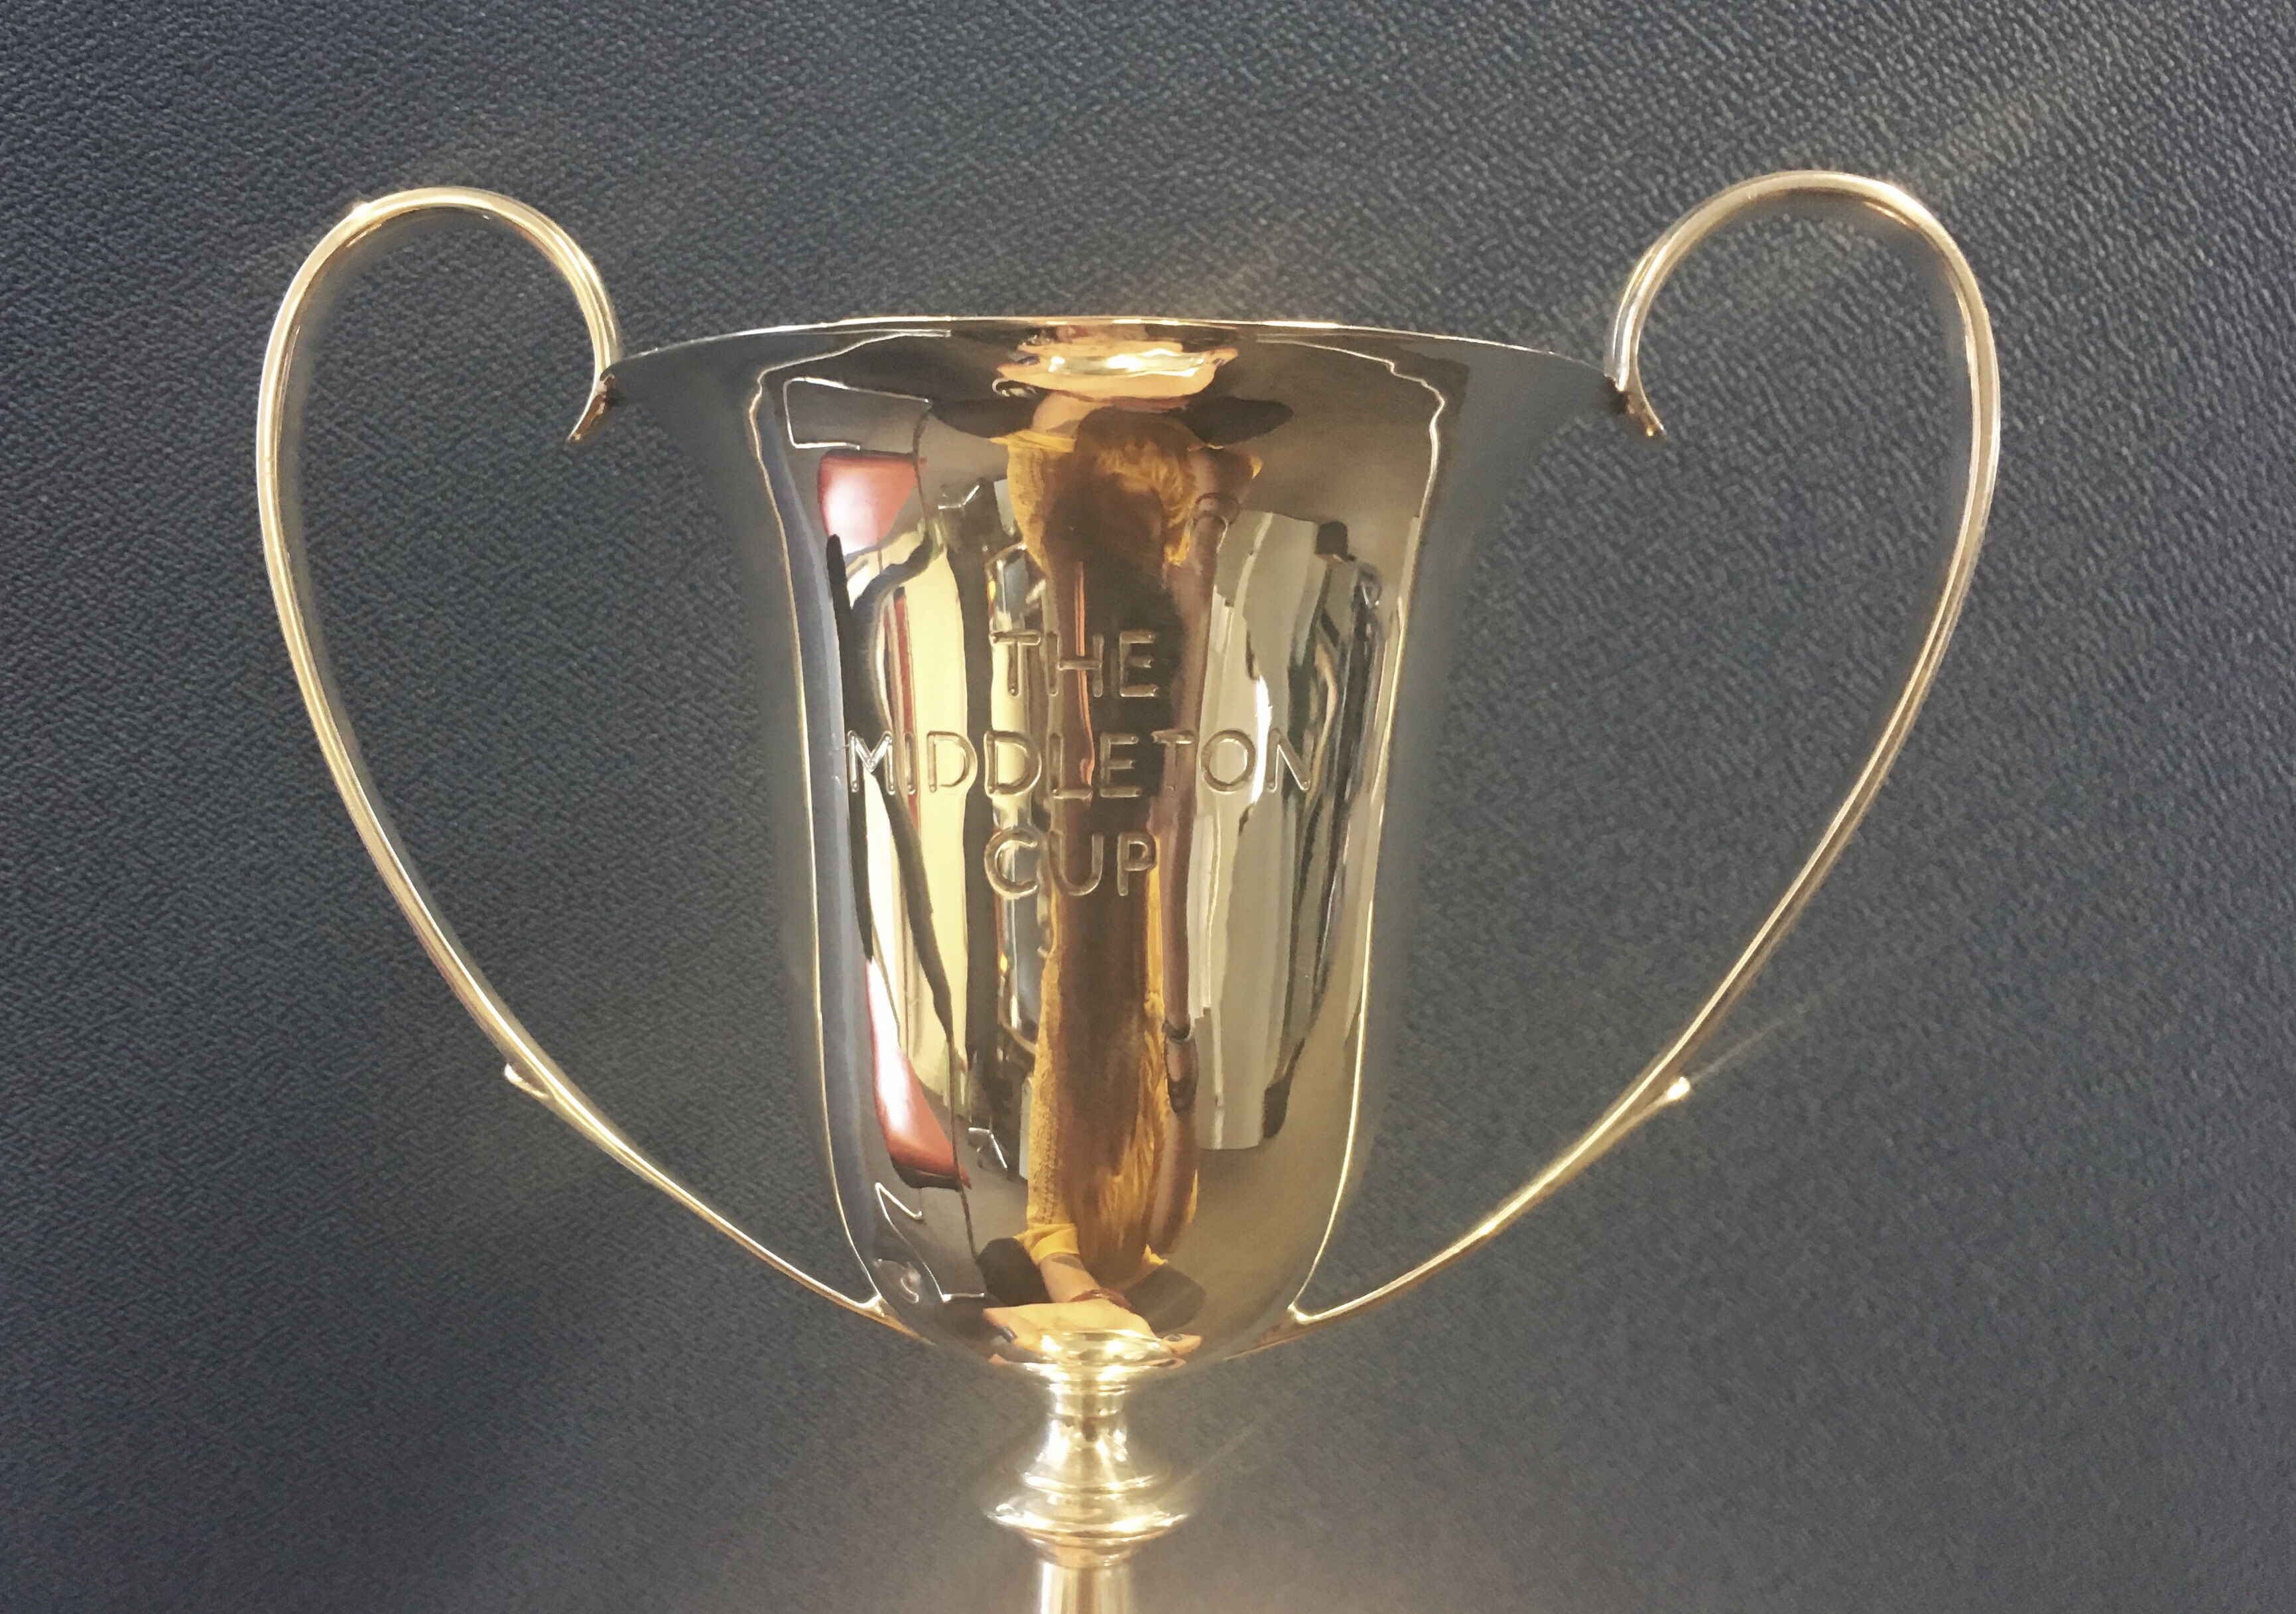 Middleton Cup